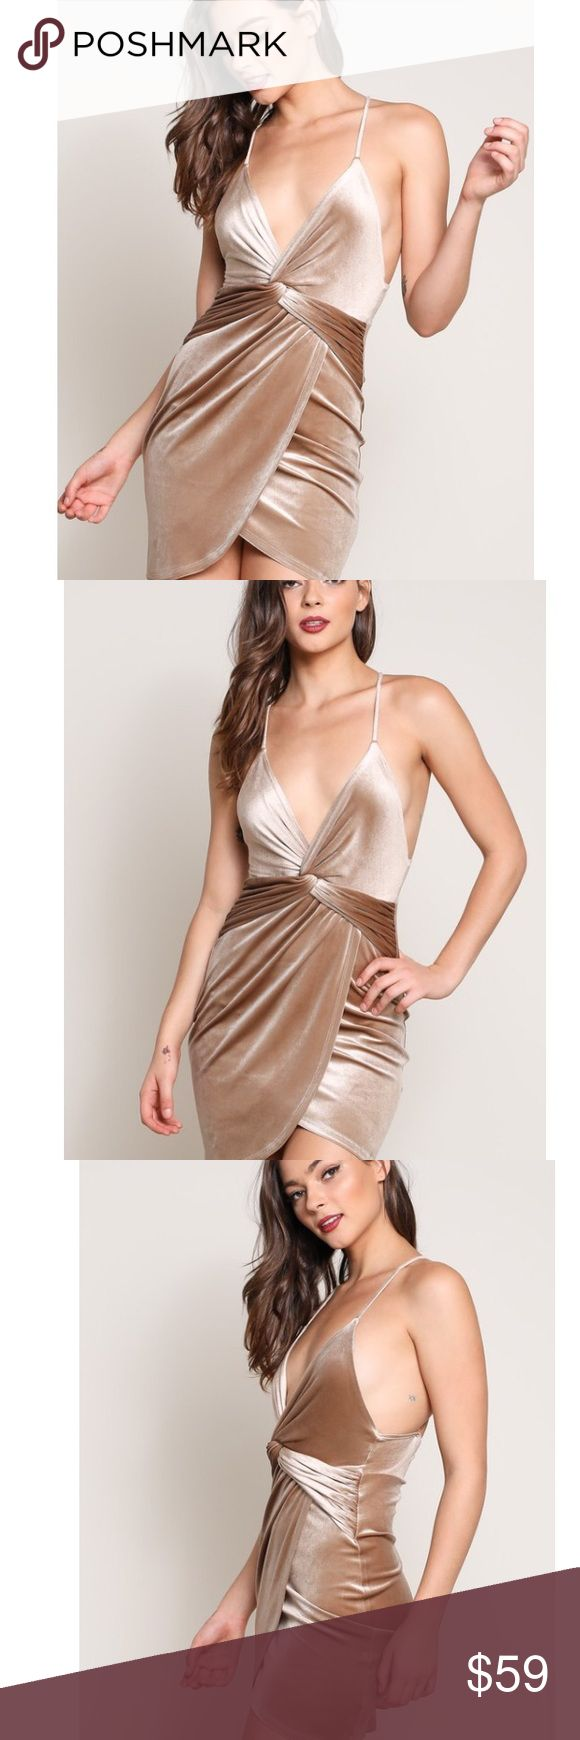 """Iris Taupe Nude Gold Velvet Dress New Boutique Item. The Iris Dress features a tight to body silhouette, twisted front detail, criss cross back, v neckline, spaghetti straps, stretch, and velvet fabrication perfect for the holidays! Length: 32"""" measured from Small Material: 92% polyester, 8% spandex Color: Taupe Nude (Gold tone) ✖️NO Trades New Years Eve Dress Cocktail Dress Party Dress Sizing: Small: 0-2 Medium: 4-6 Large: 8-10 Dresses Mini"""